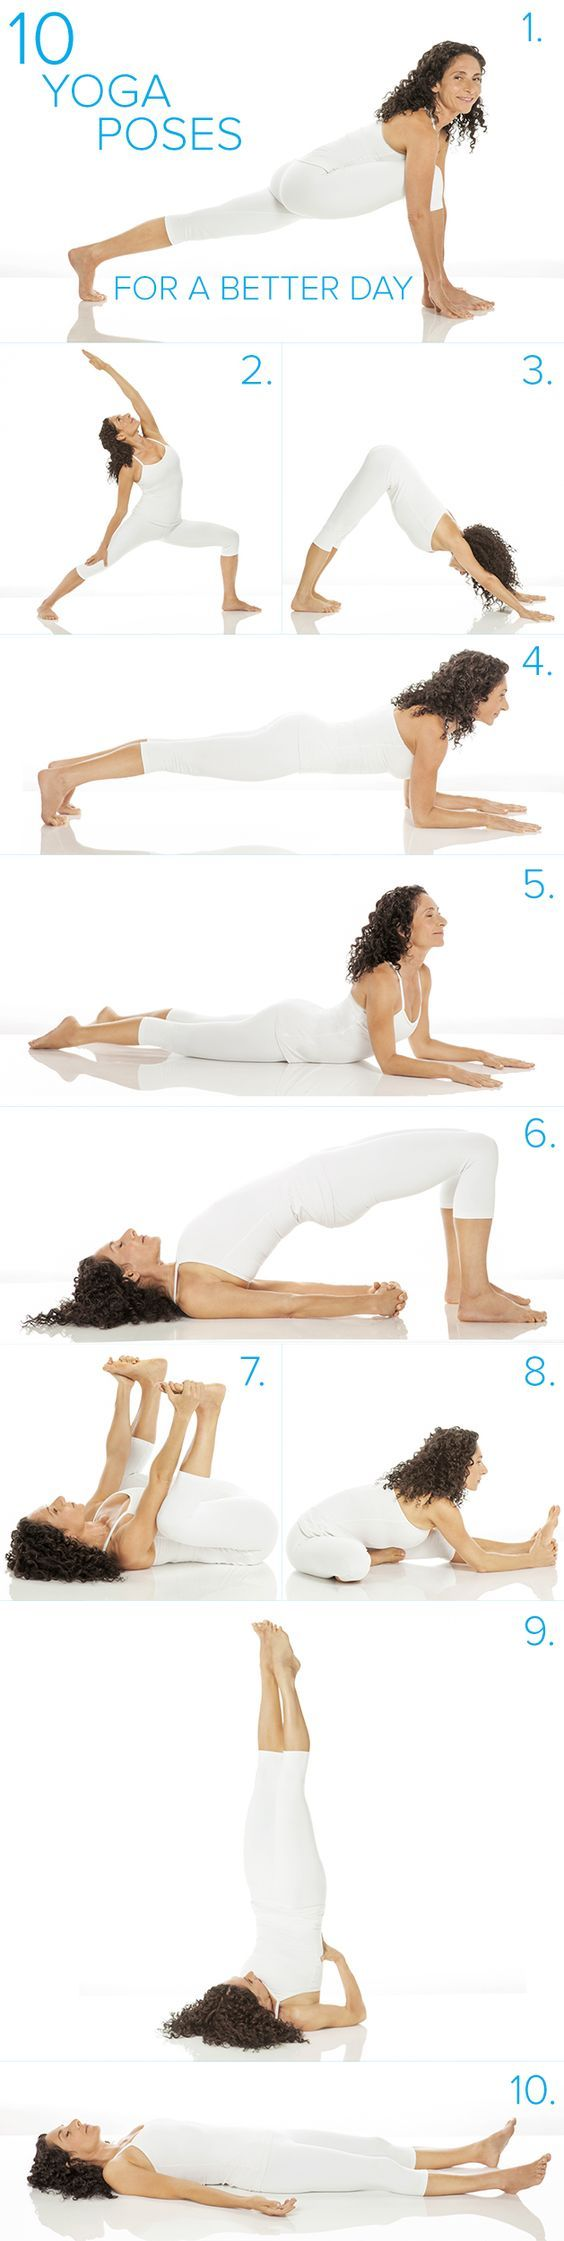 This 10 minute power core yoga workout will not only engage your muscles but also strengthen and tone your entire body all whilst clearing your mind and centering your focus